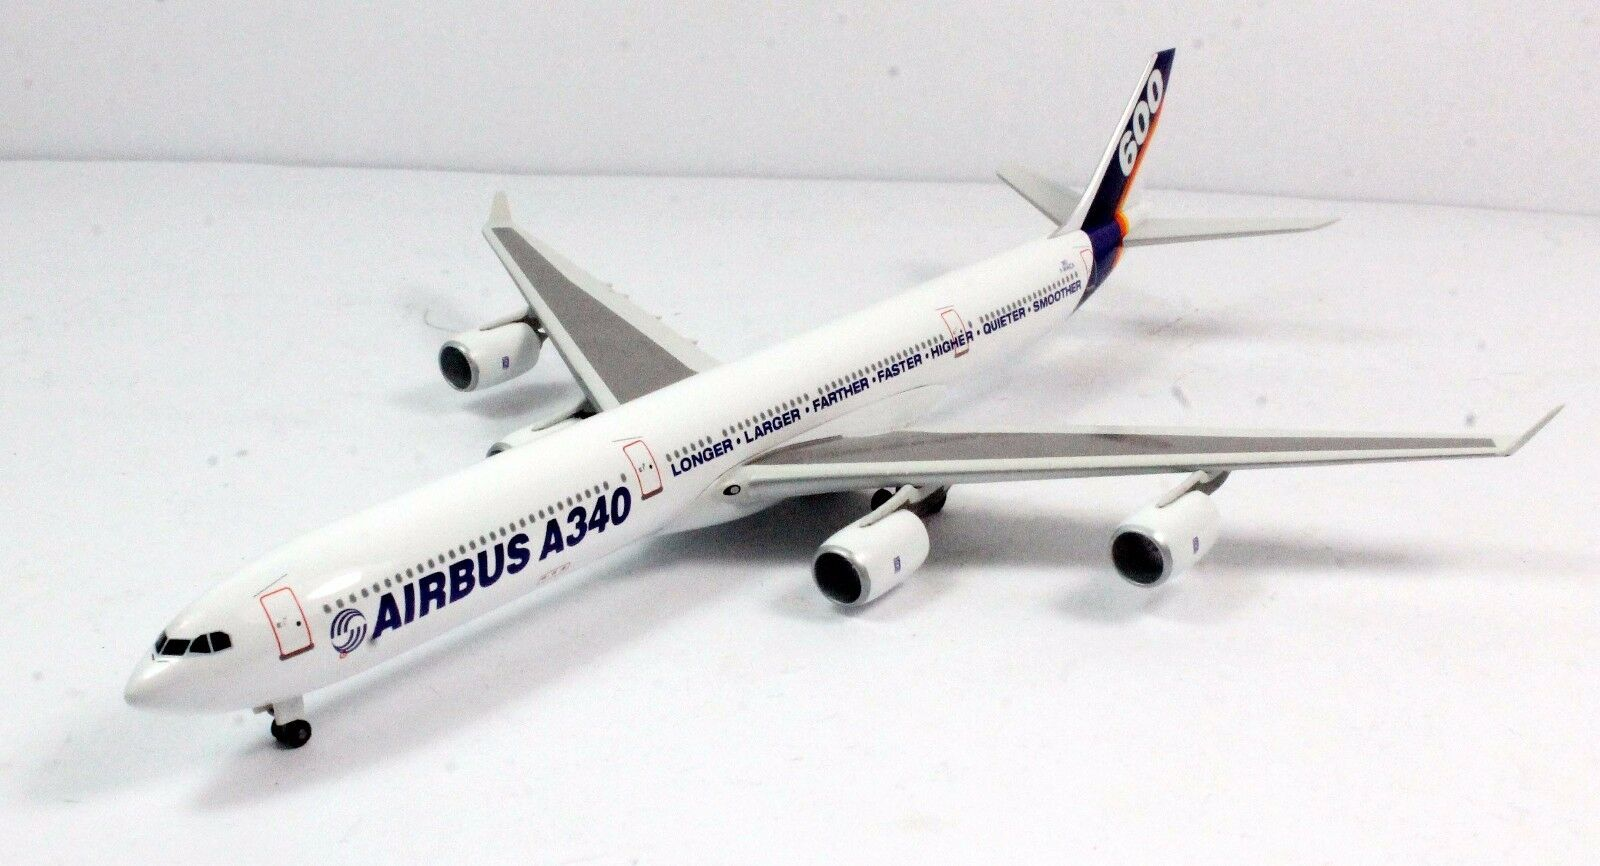 1 400 DRAGON WINGS 55277 A340-600 AIRBUS INDUSTRIE 7R